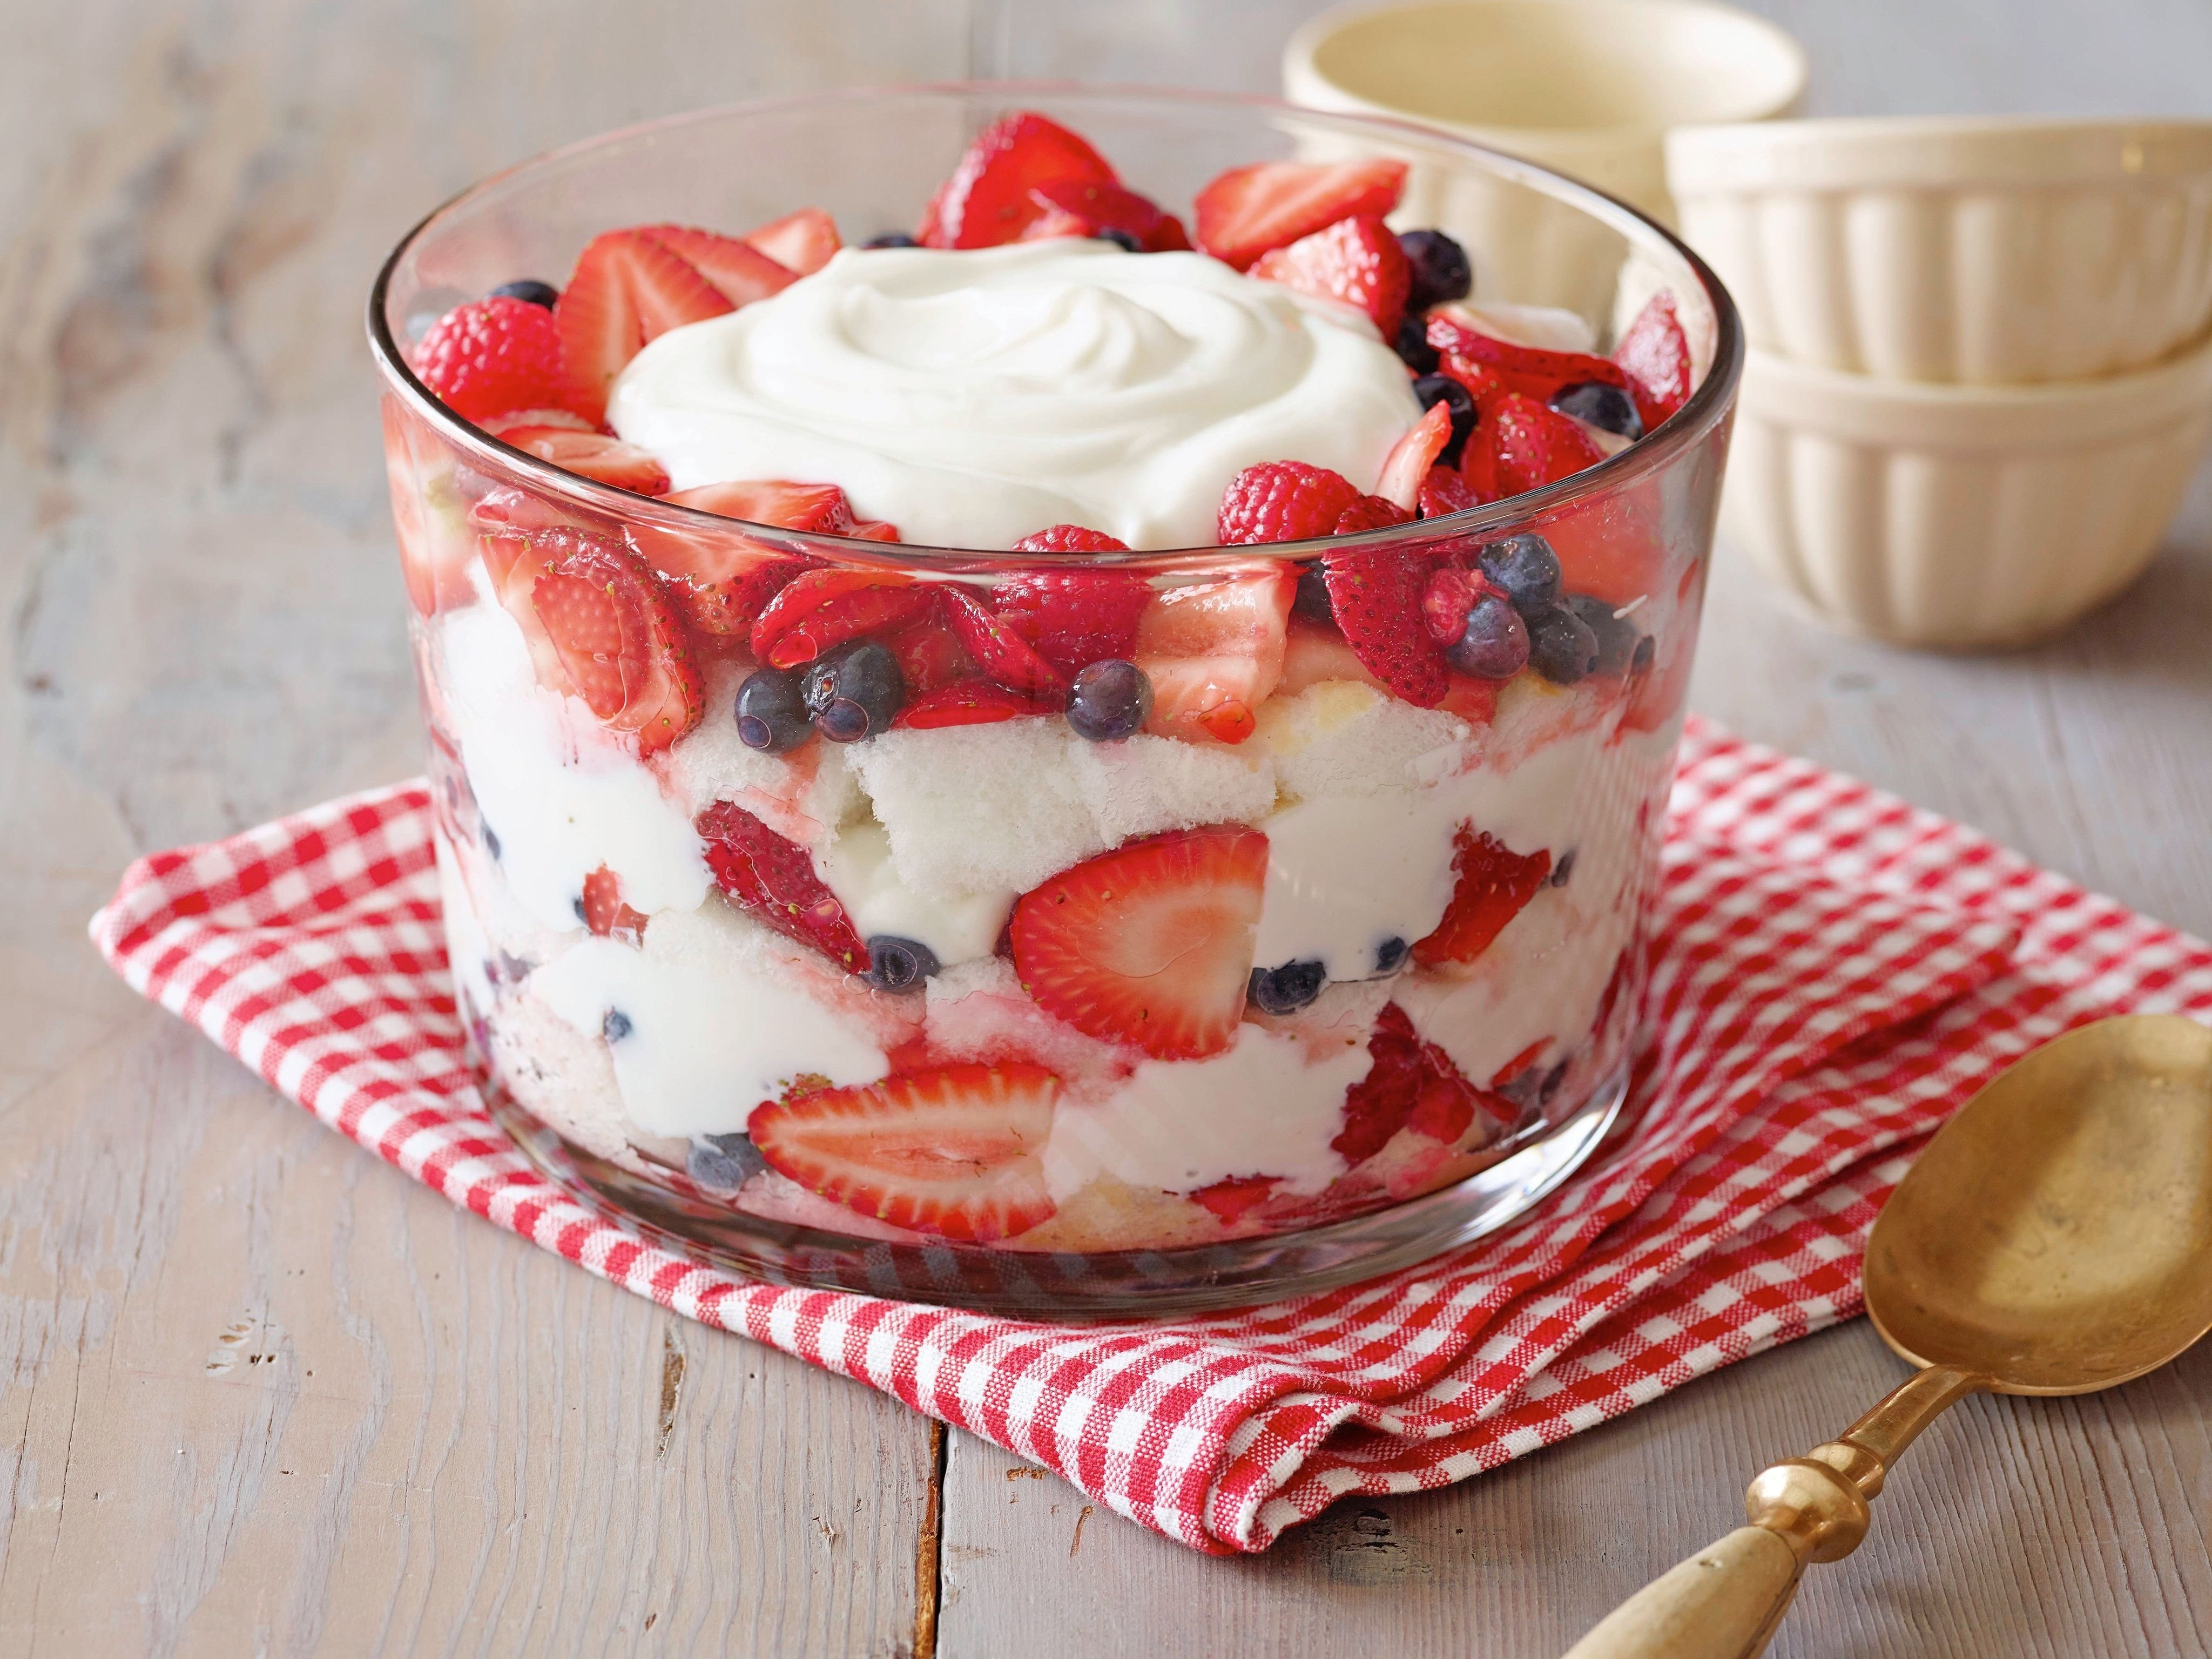 10 Famous Angel Food Cake Recipe Ideas top cookout desserts recipes and ideas food network berry trifle 2020